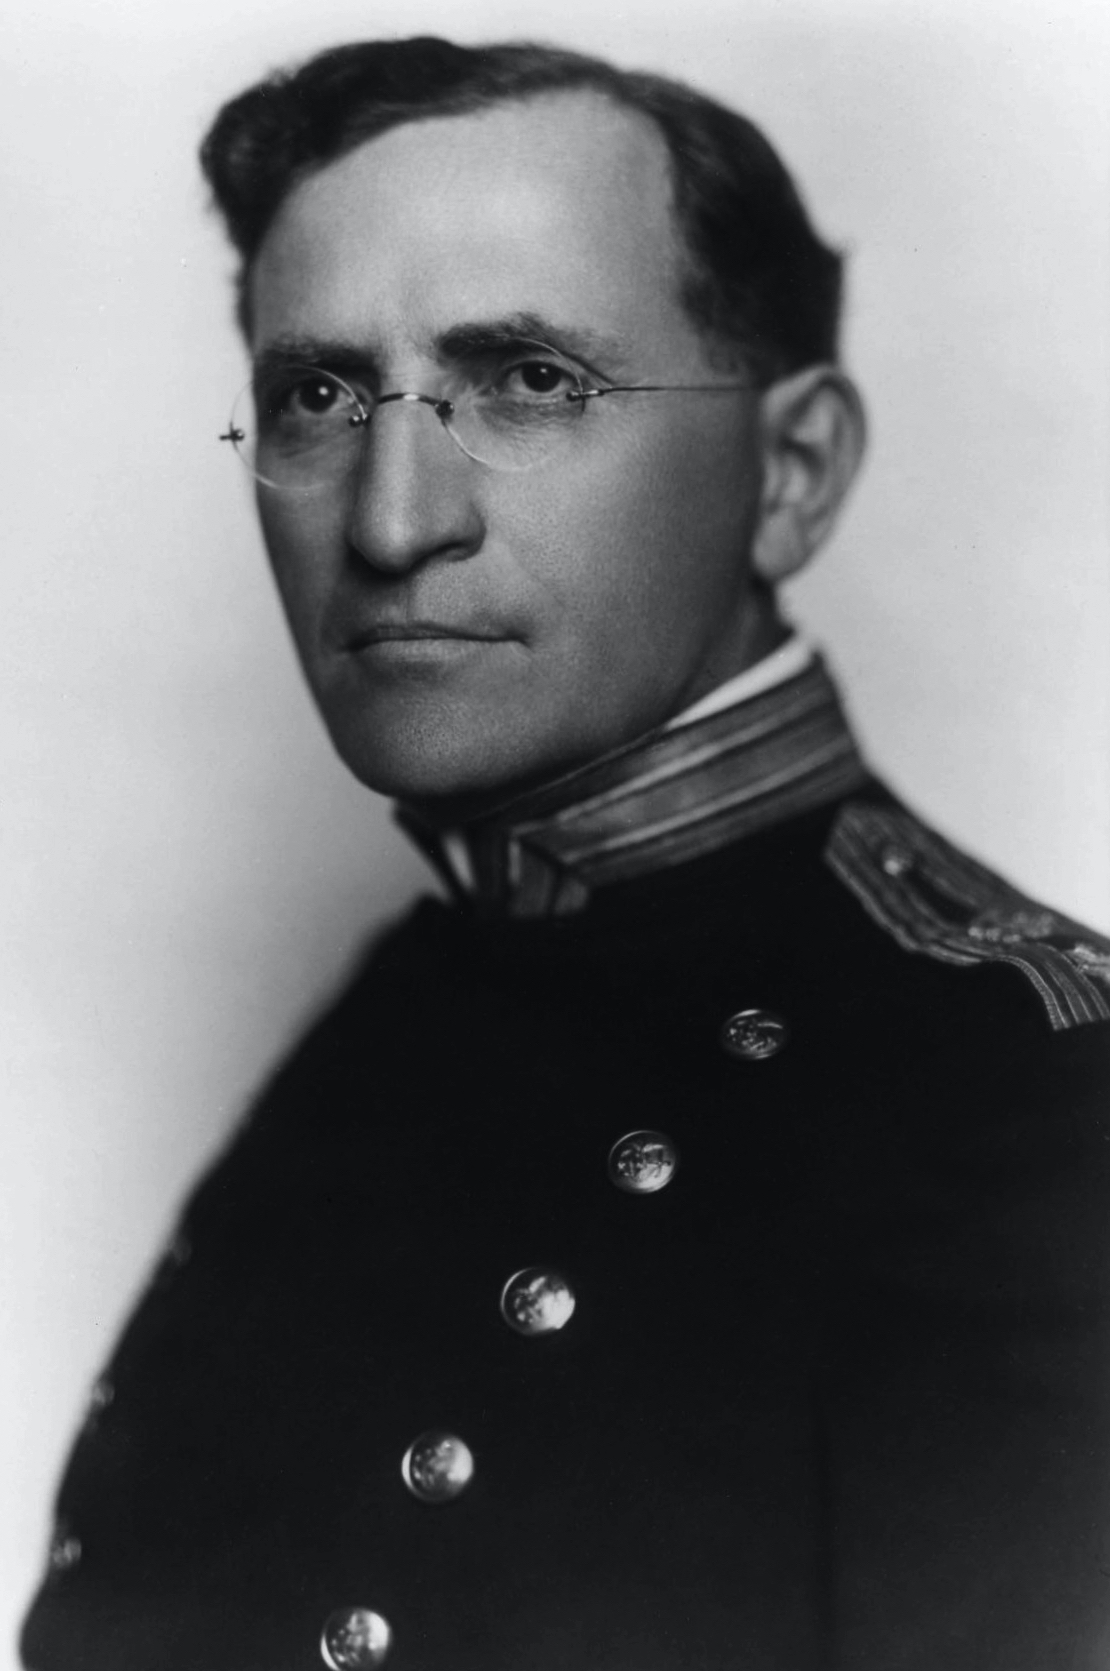 Portrait of a man in uniform and glasses